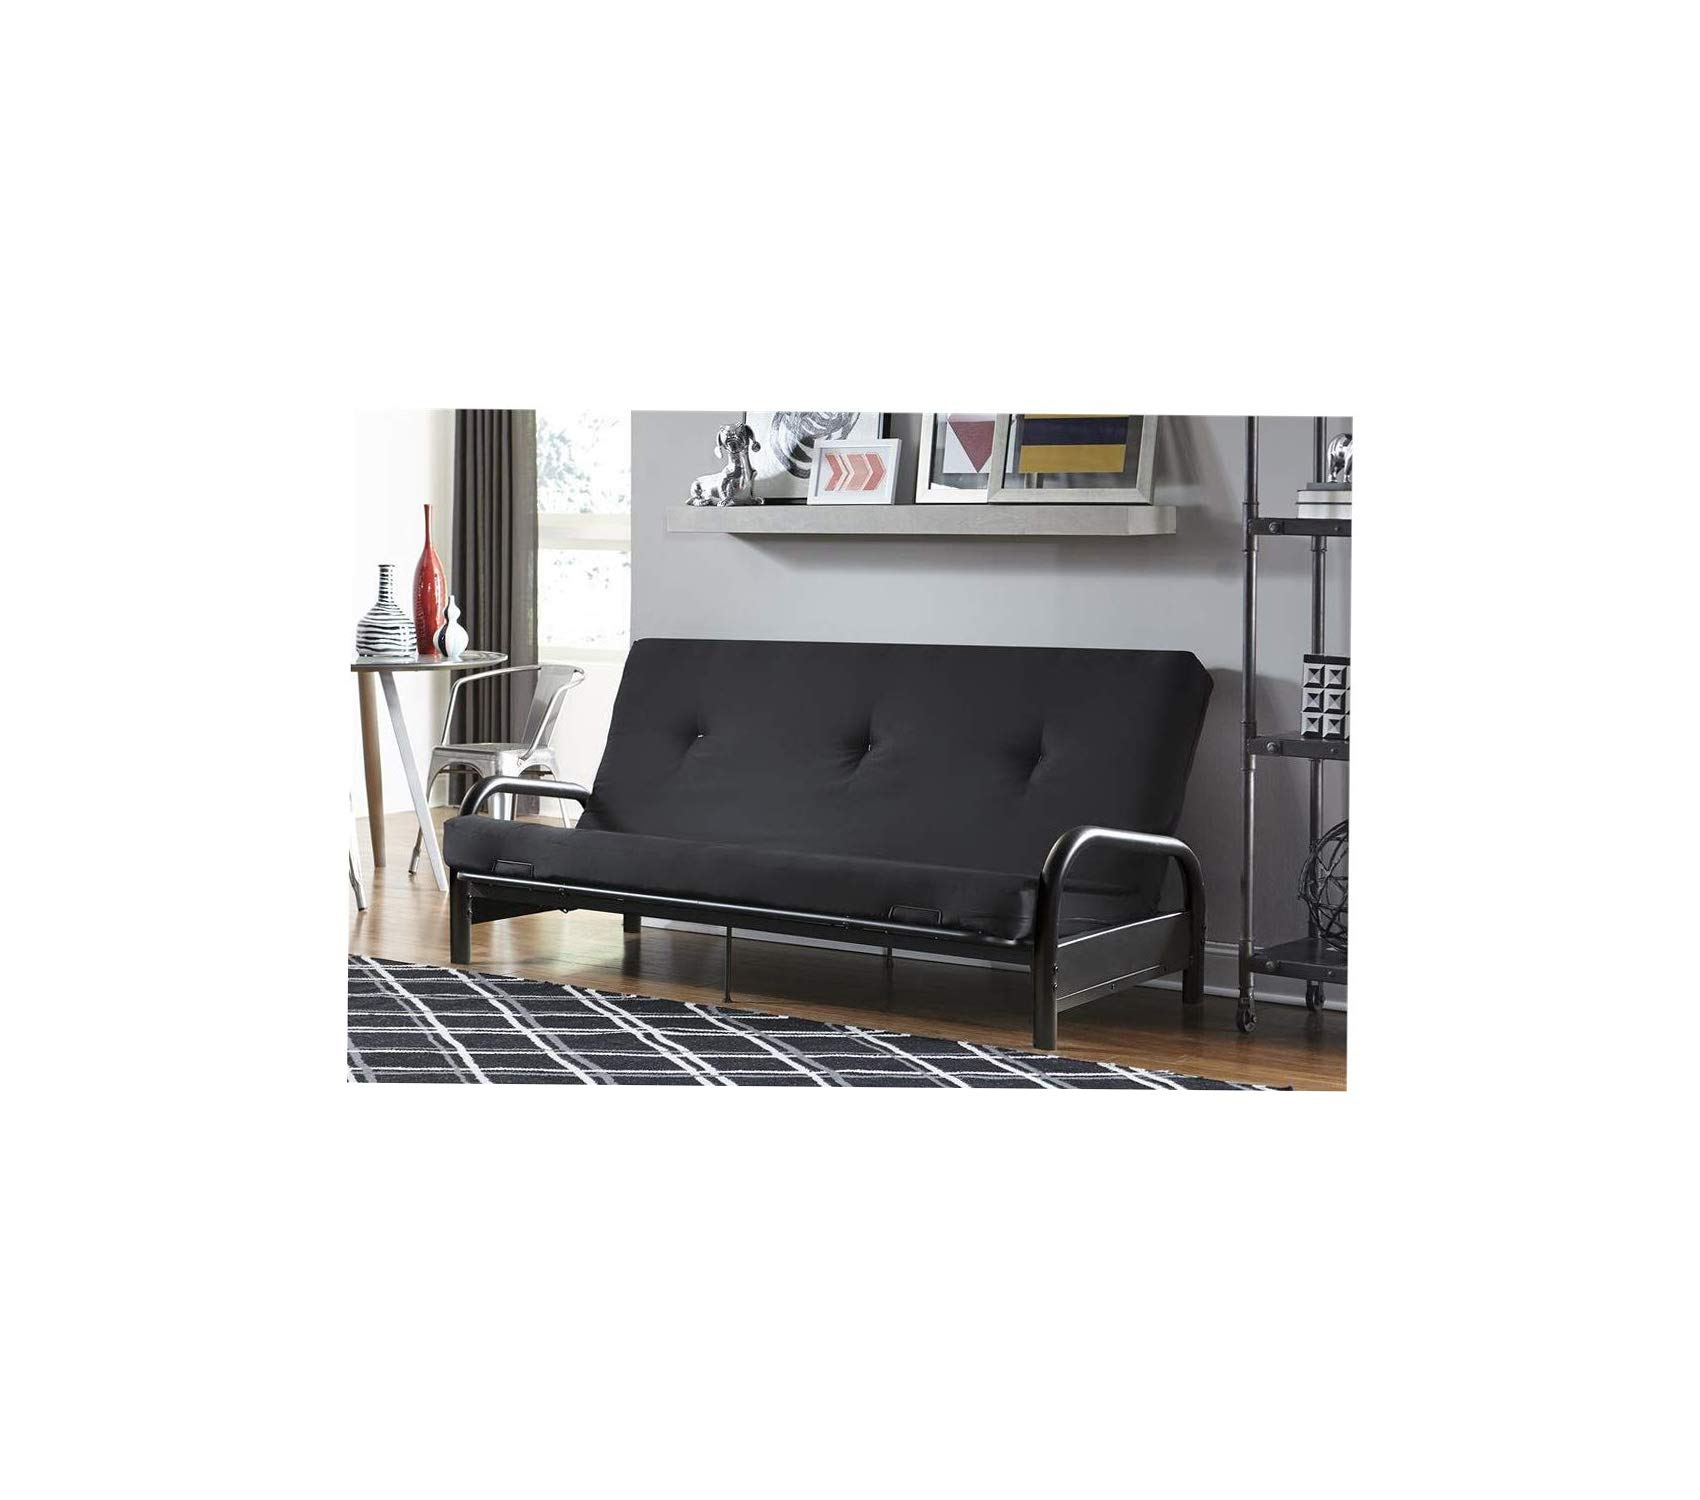 Wood & Style Office Home Furniture Premium Vermont Metal Frame and 6 Black Futon and Mattress Set, Full by Wood & Style